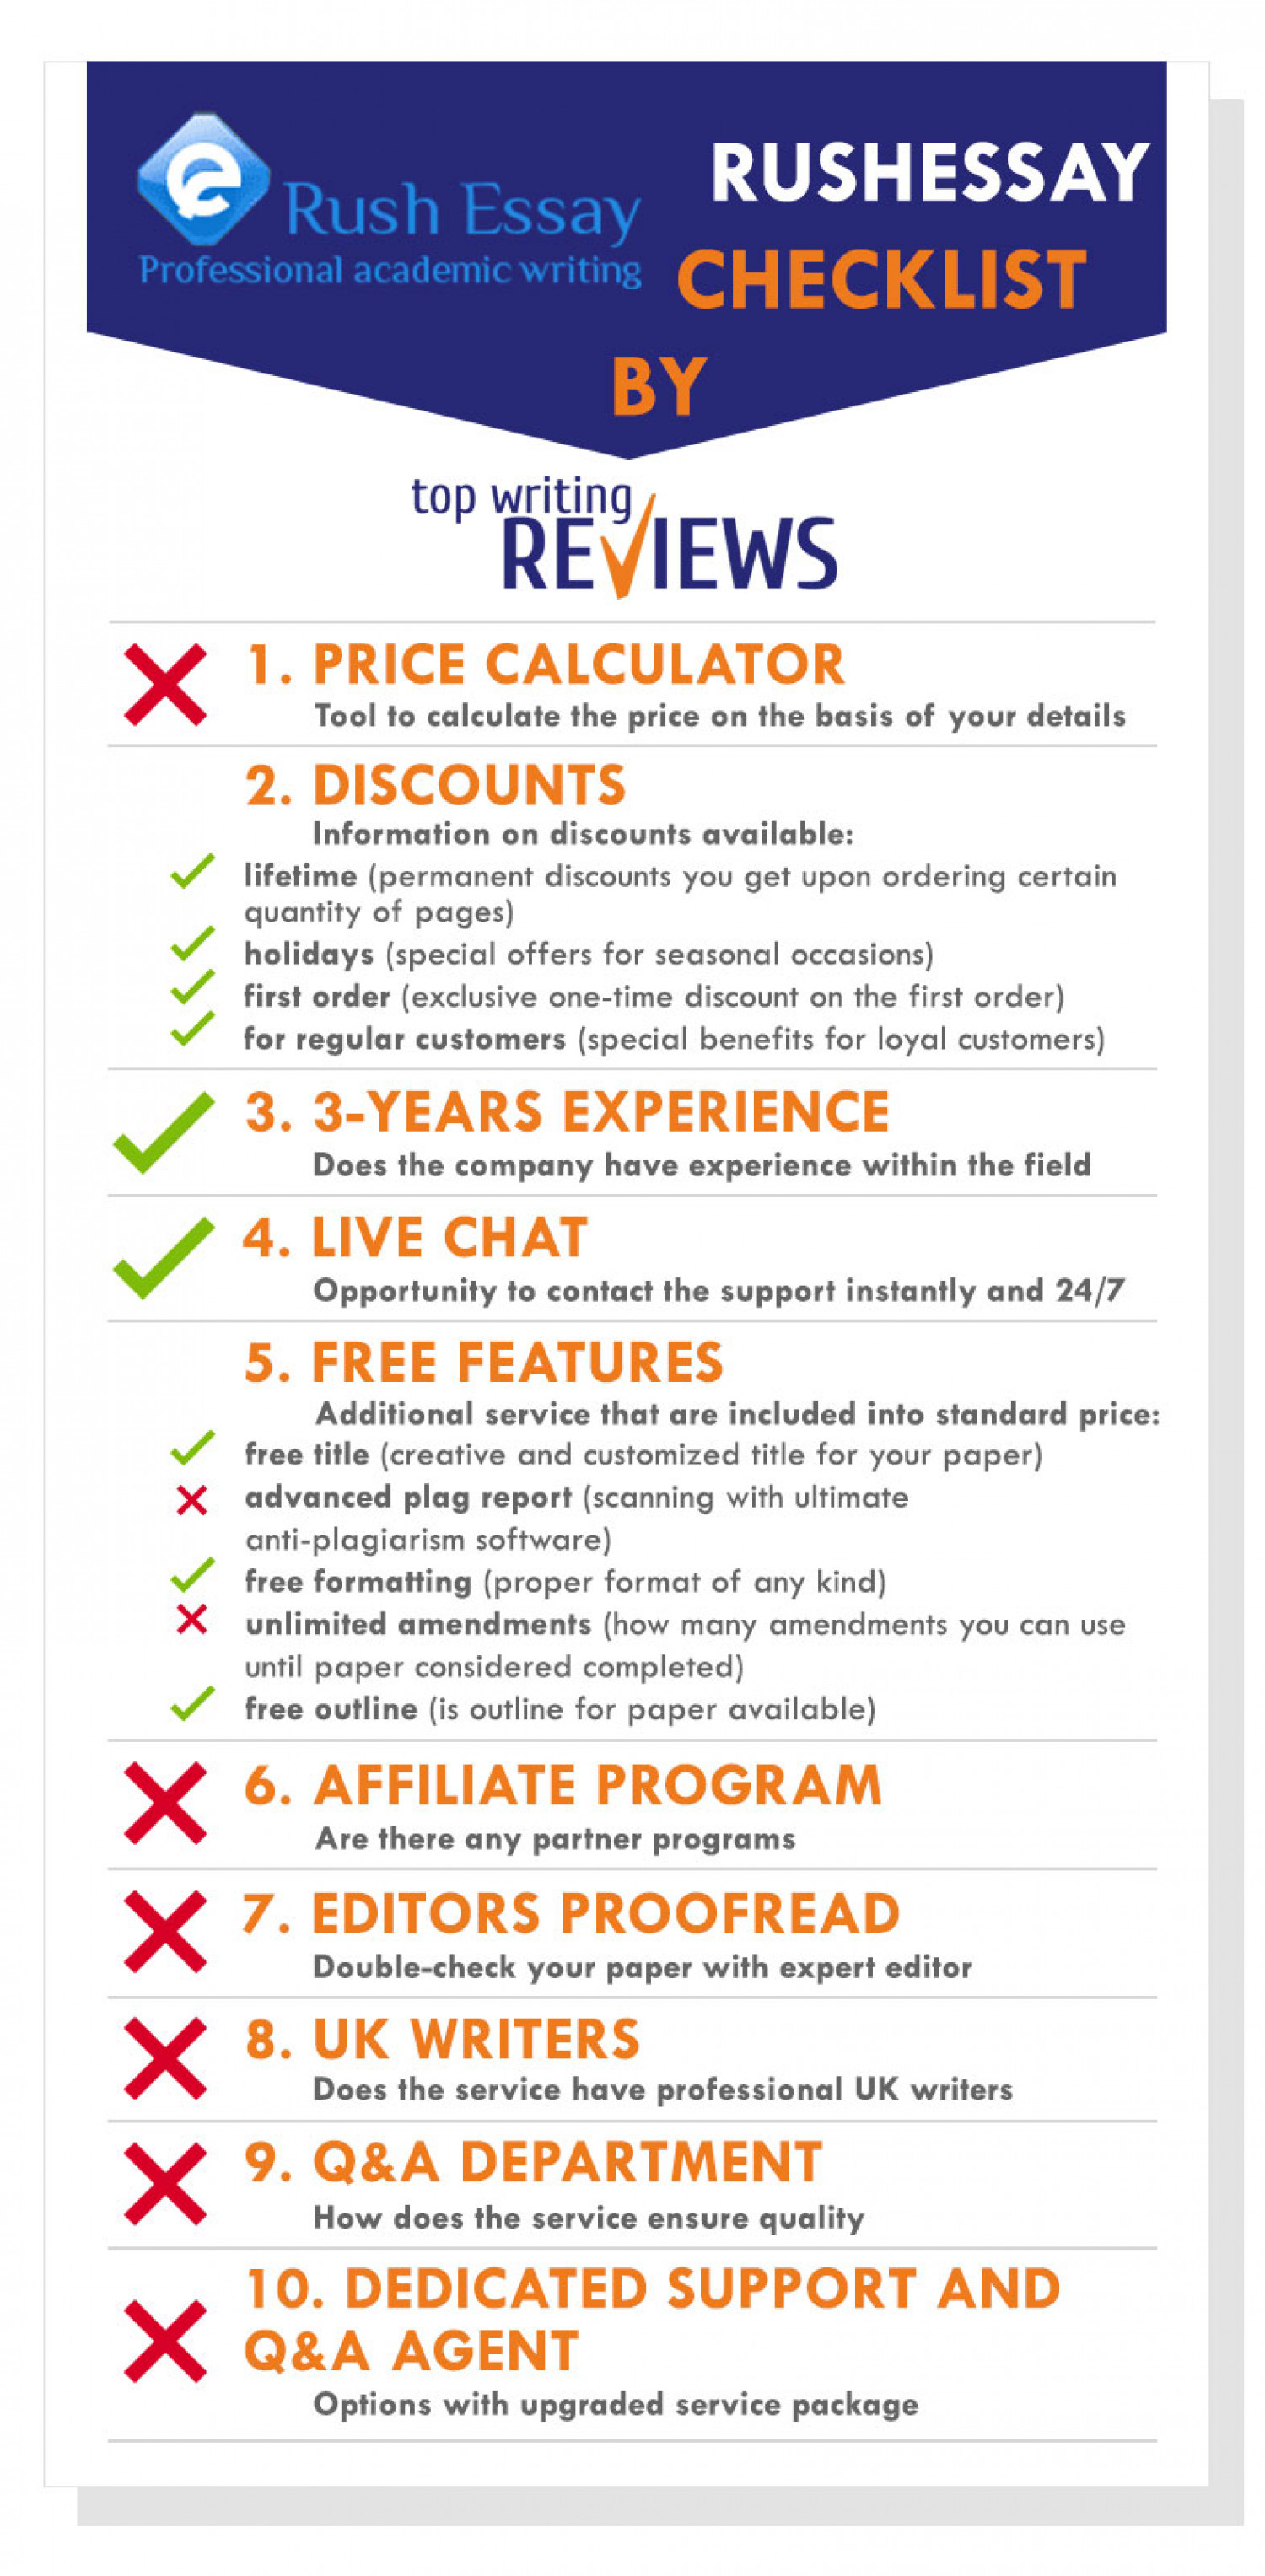 Checklist about main features and services of RushEssay writing company Infographic